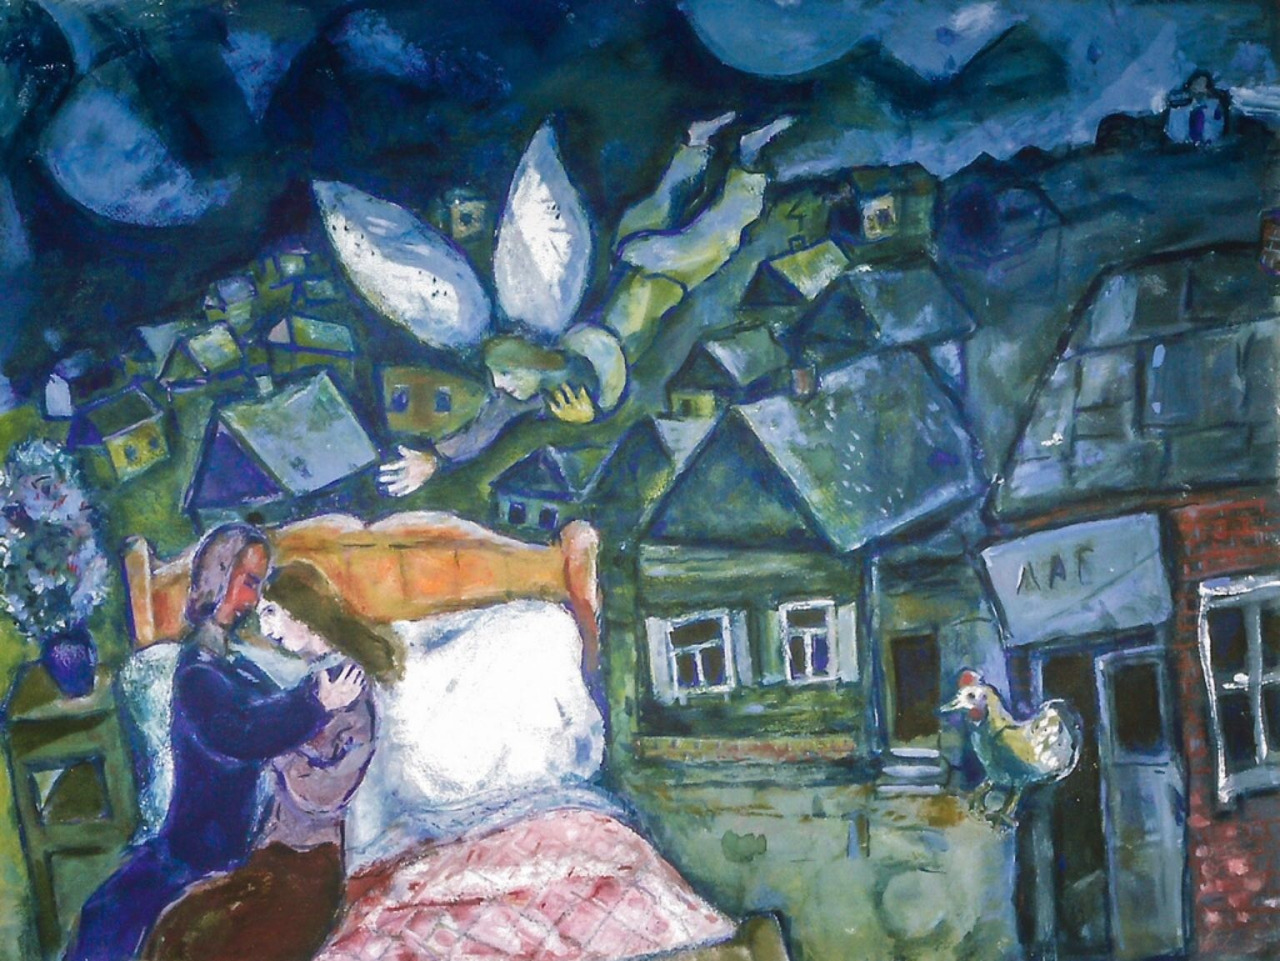 an analysis of the artwork by marc chagall Find the latest shows, biography, and artworks for sale by marc chagall honored  for his distinct style and pioneering role among jewish artists, marc chagal.